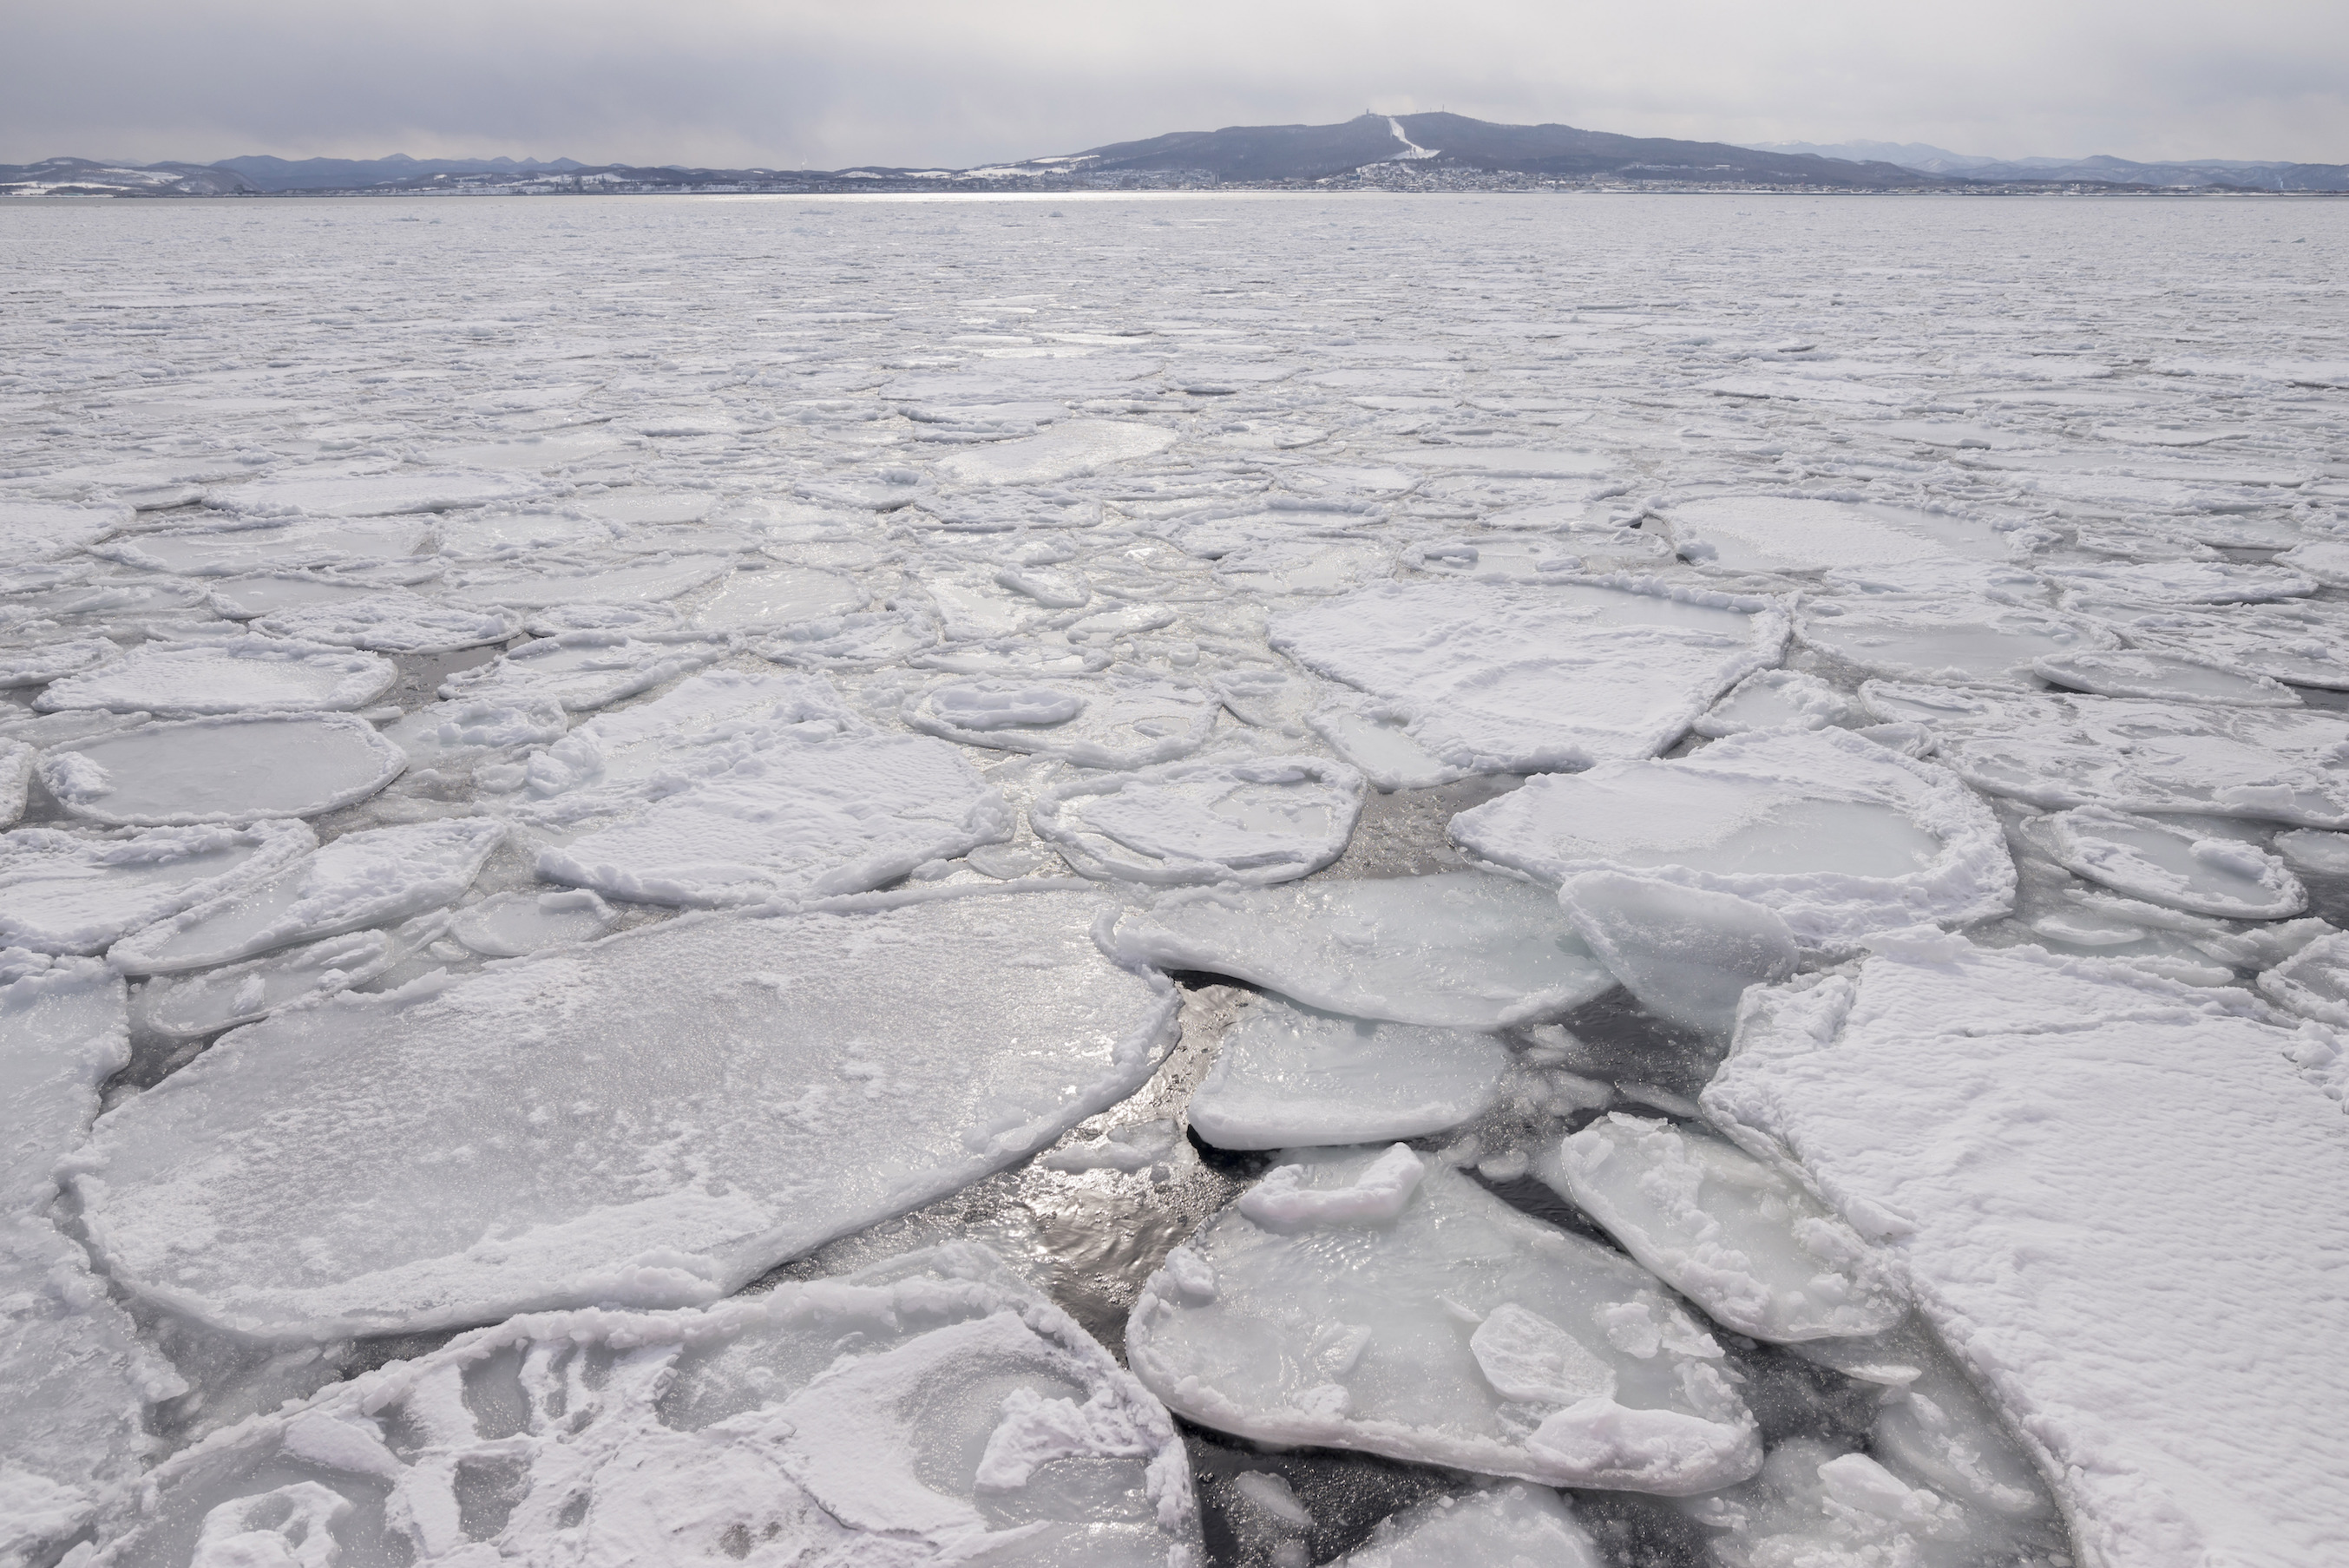 It's an Ice Age paradox: ancient ice melts actually occurred when air temperatures were at their coldest. Scientists have discovered why.